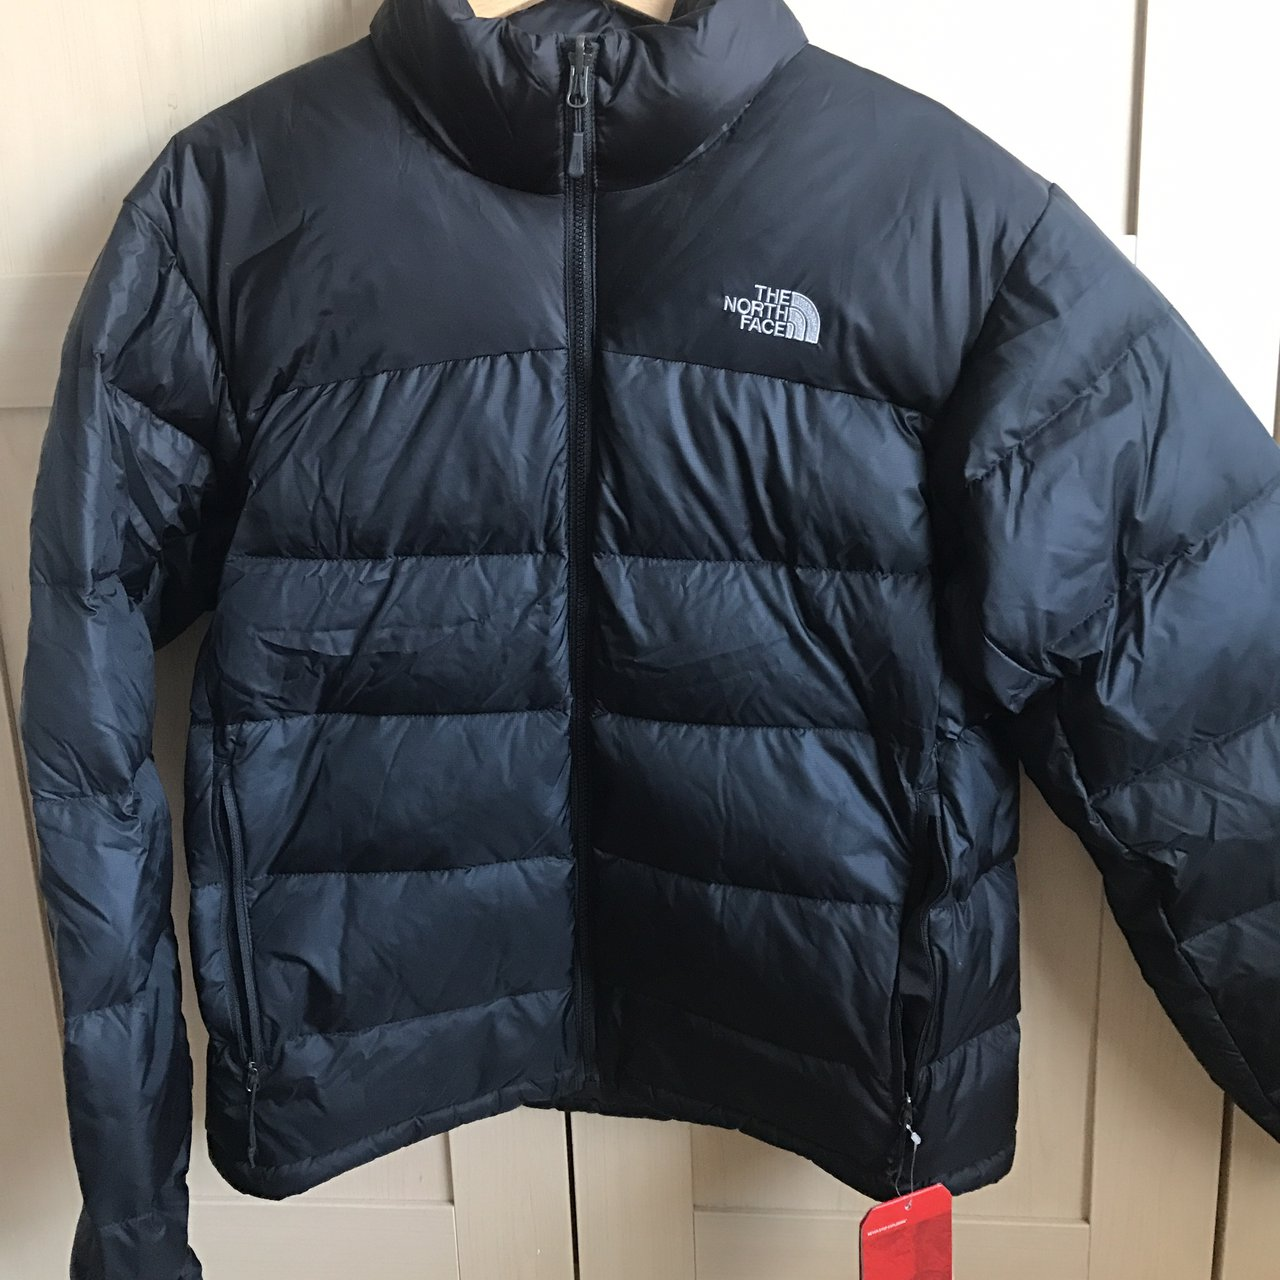 MEN S NUPTSE 2 JACKET Size  M Deadstock 6745c9ef6